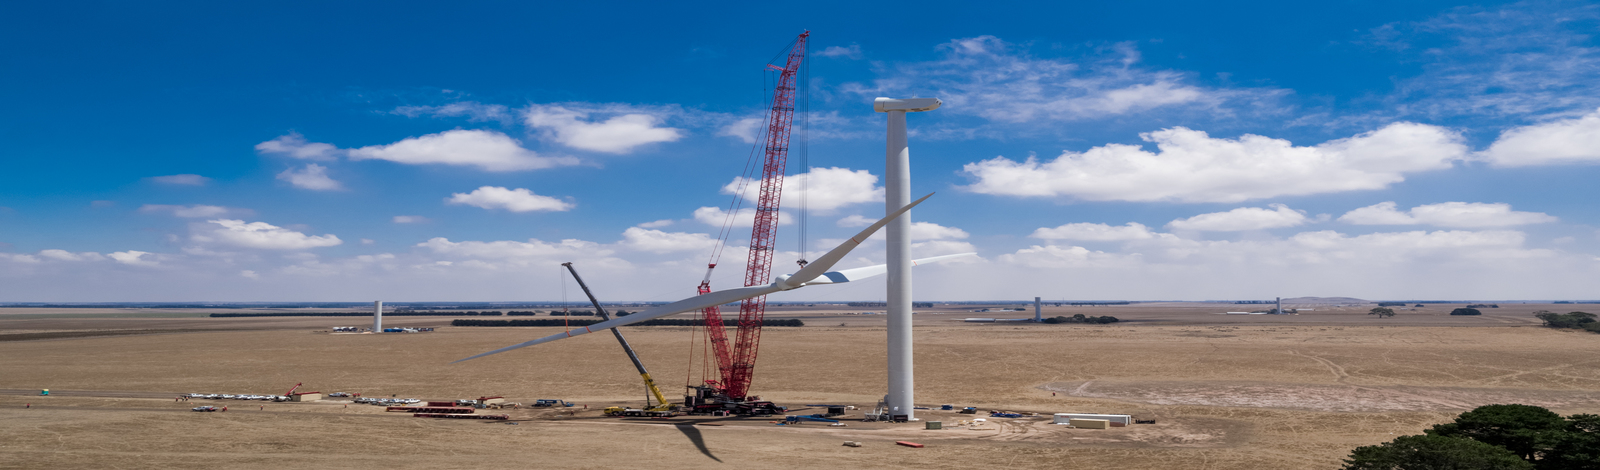 Goldwind_wind_turbine_installation_at_SHWF1__1600x470